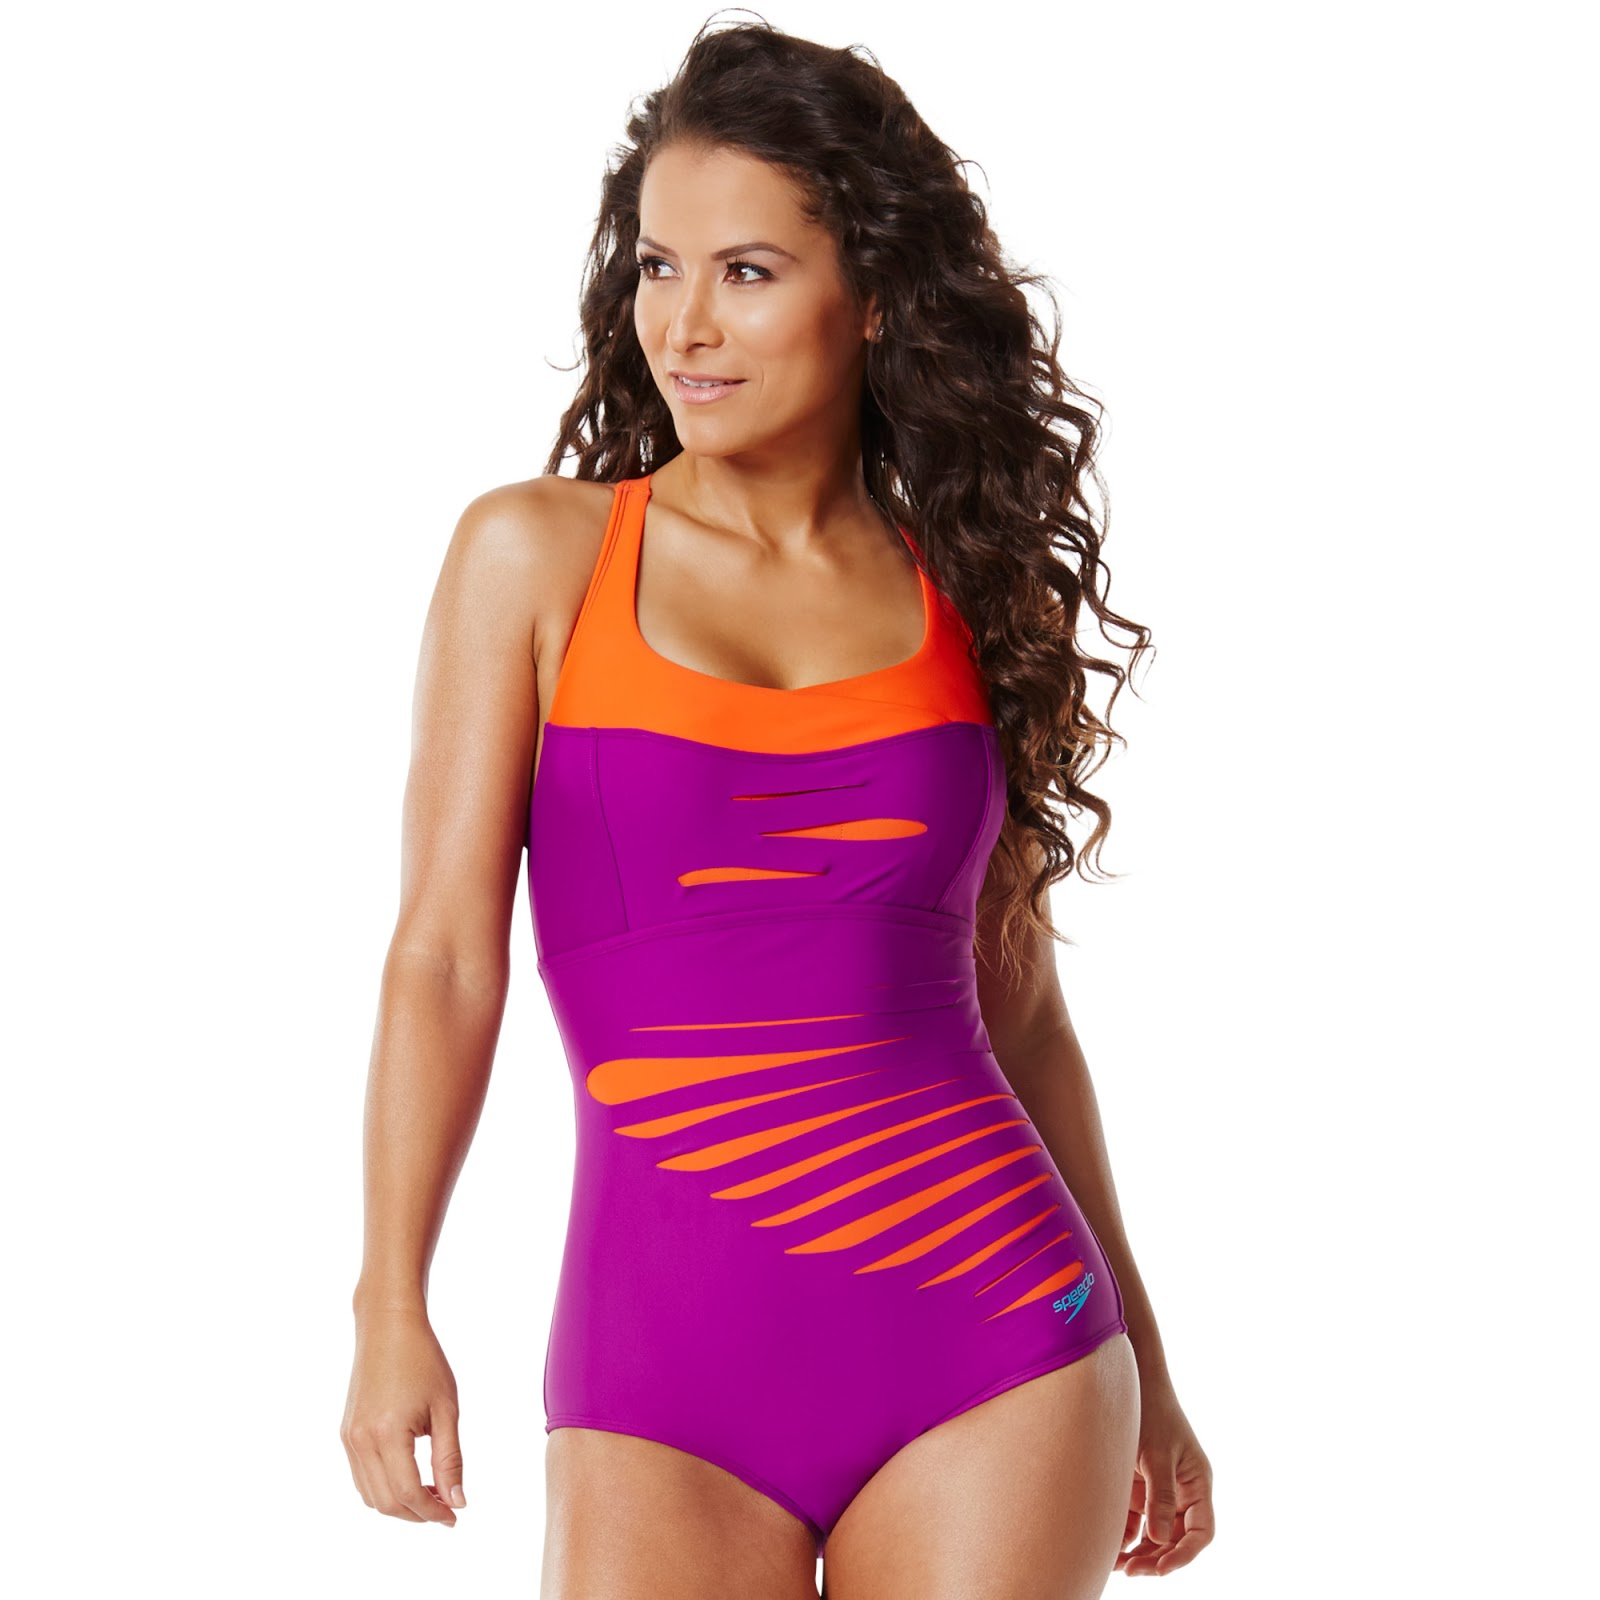 http://www.zumba.com/en-US/store-zin/US/product/slash-o-rama-cross-back-one-piece?color=Vivid%20Violet